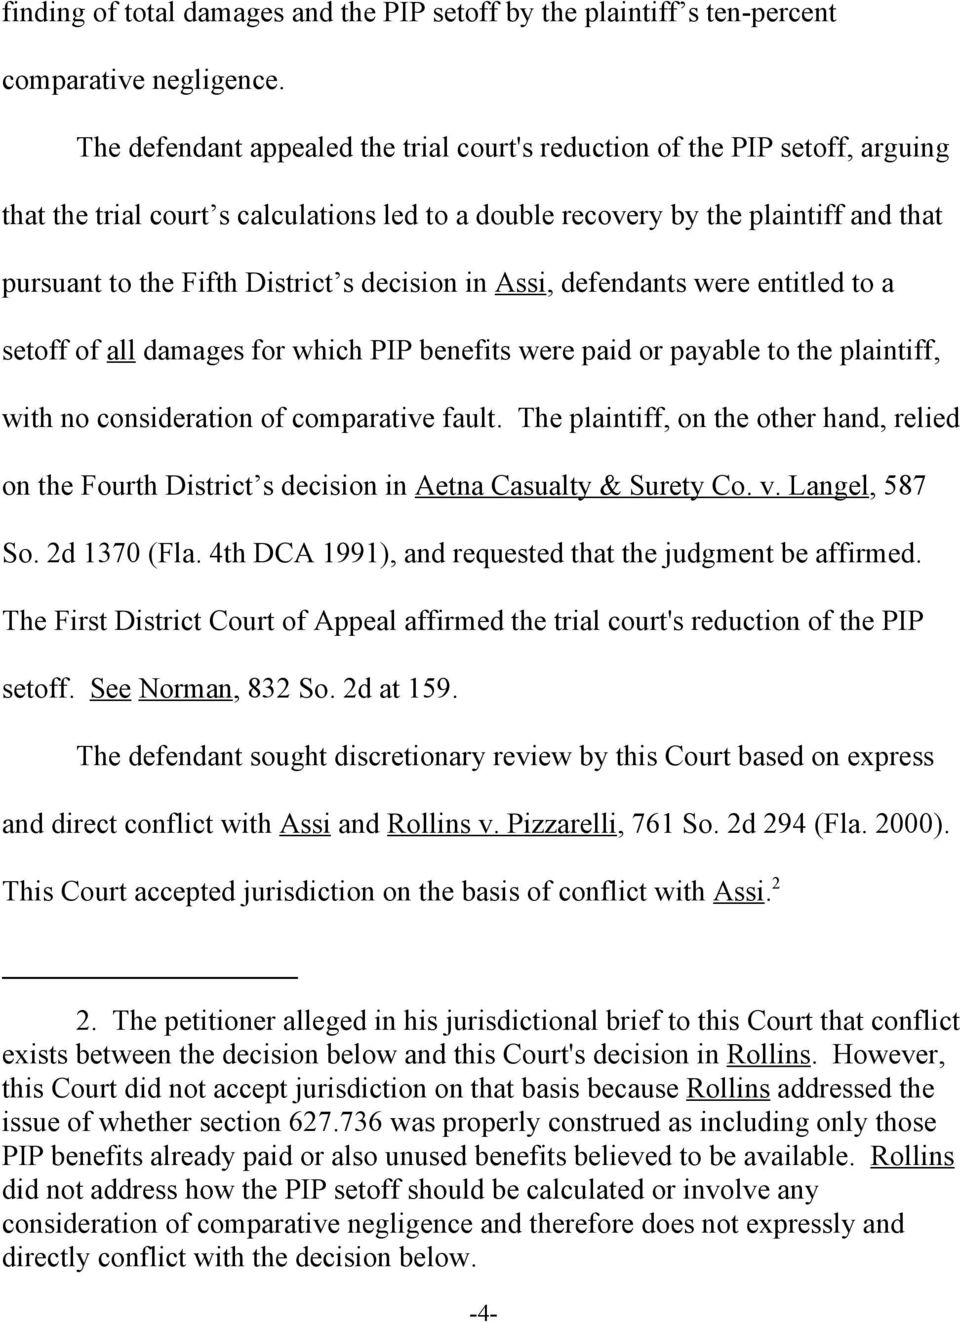 decision in Assi, defendants were entitled to a setoff of all damages for which PIP benefits were paid or payable to the plaintiff, with no consideration of comparative fault.